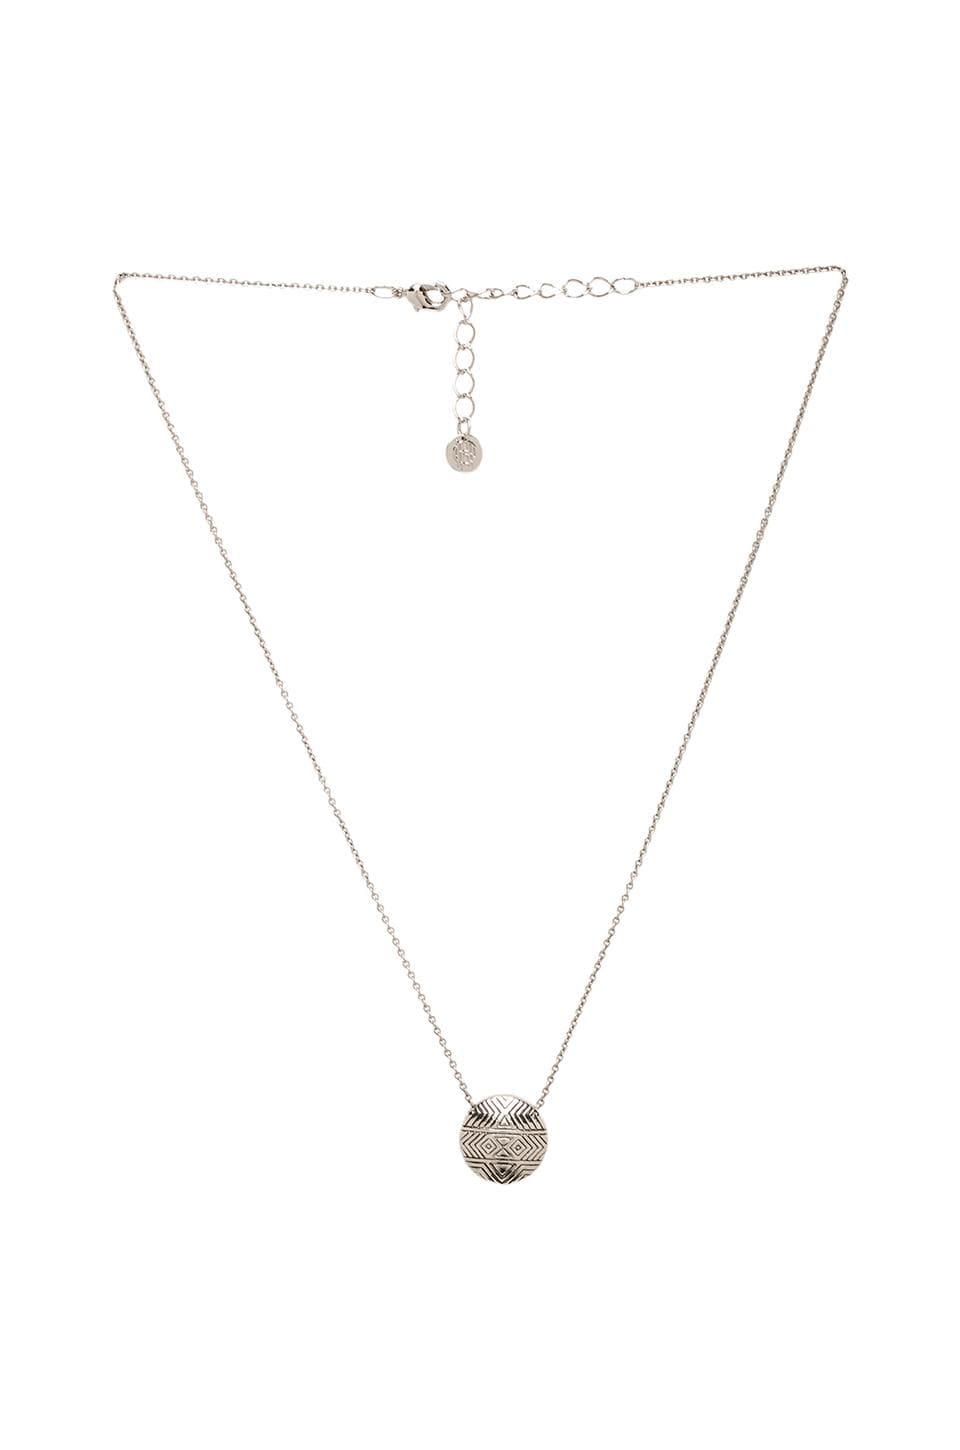 House of Harlow 1960 House of Harlow Tholos Mosaic Necklace in Silver